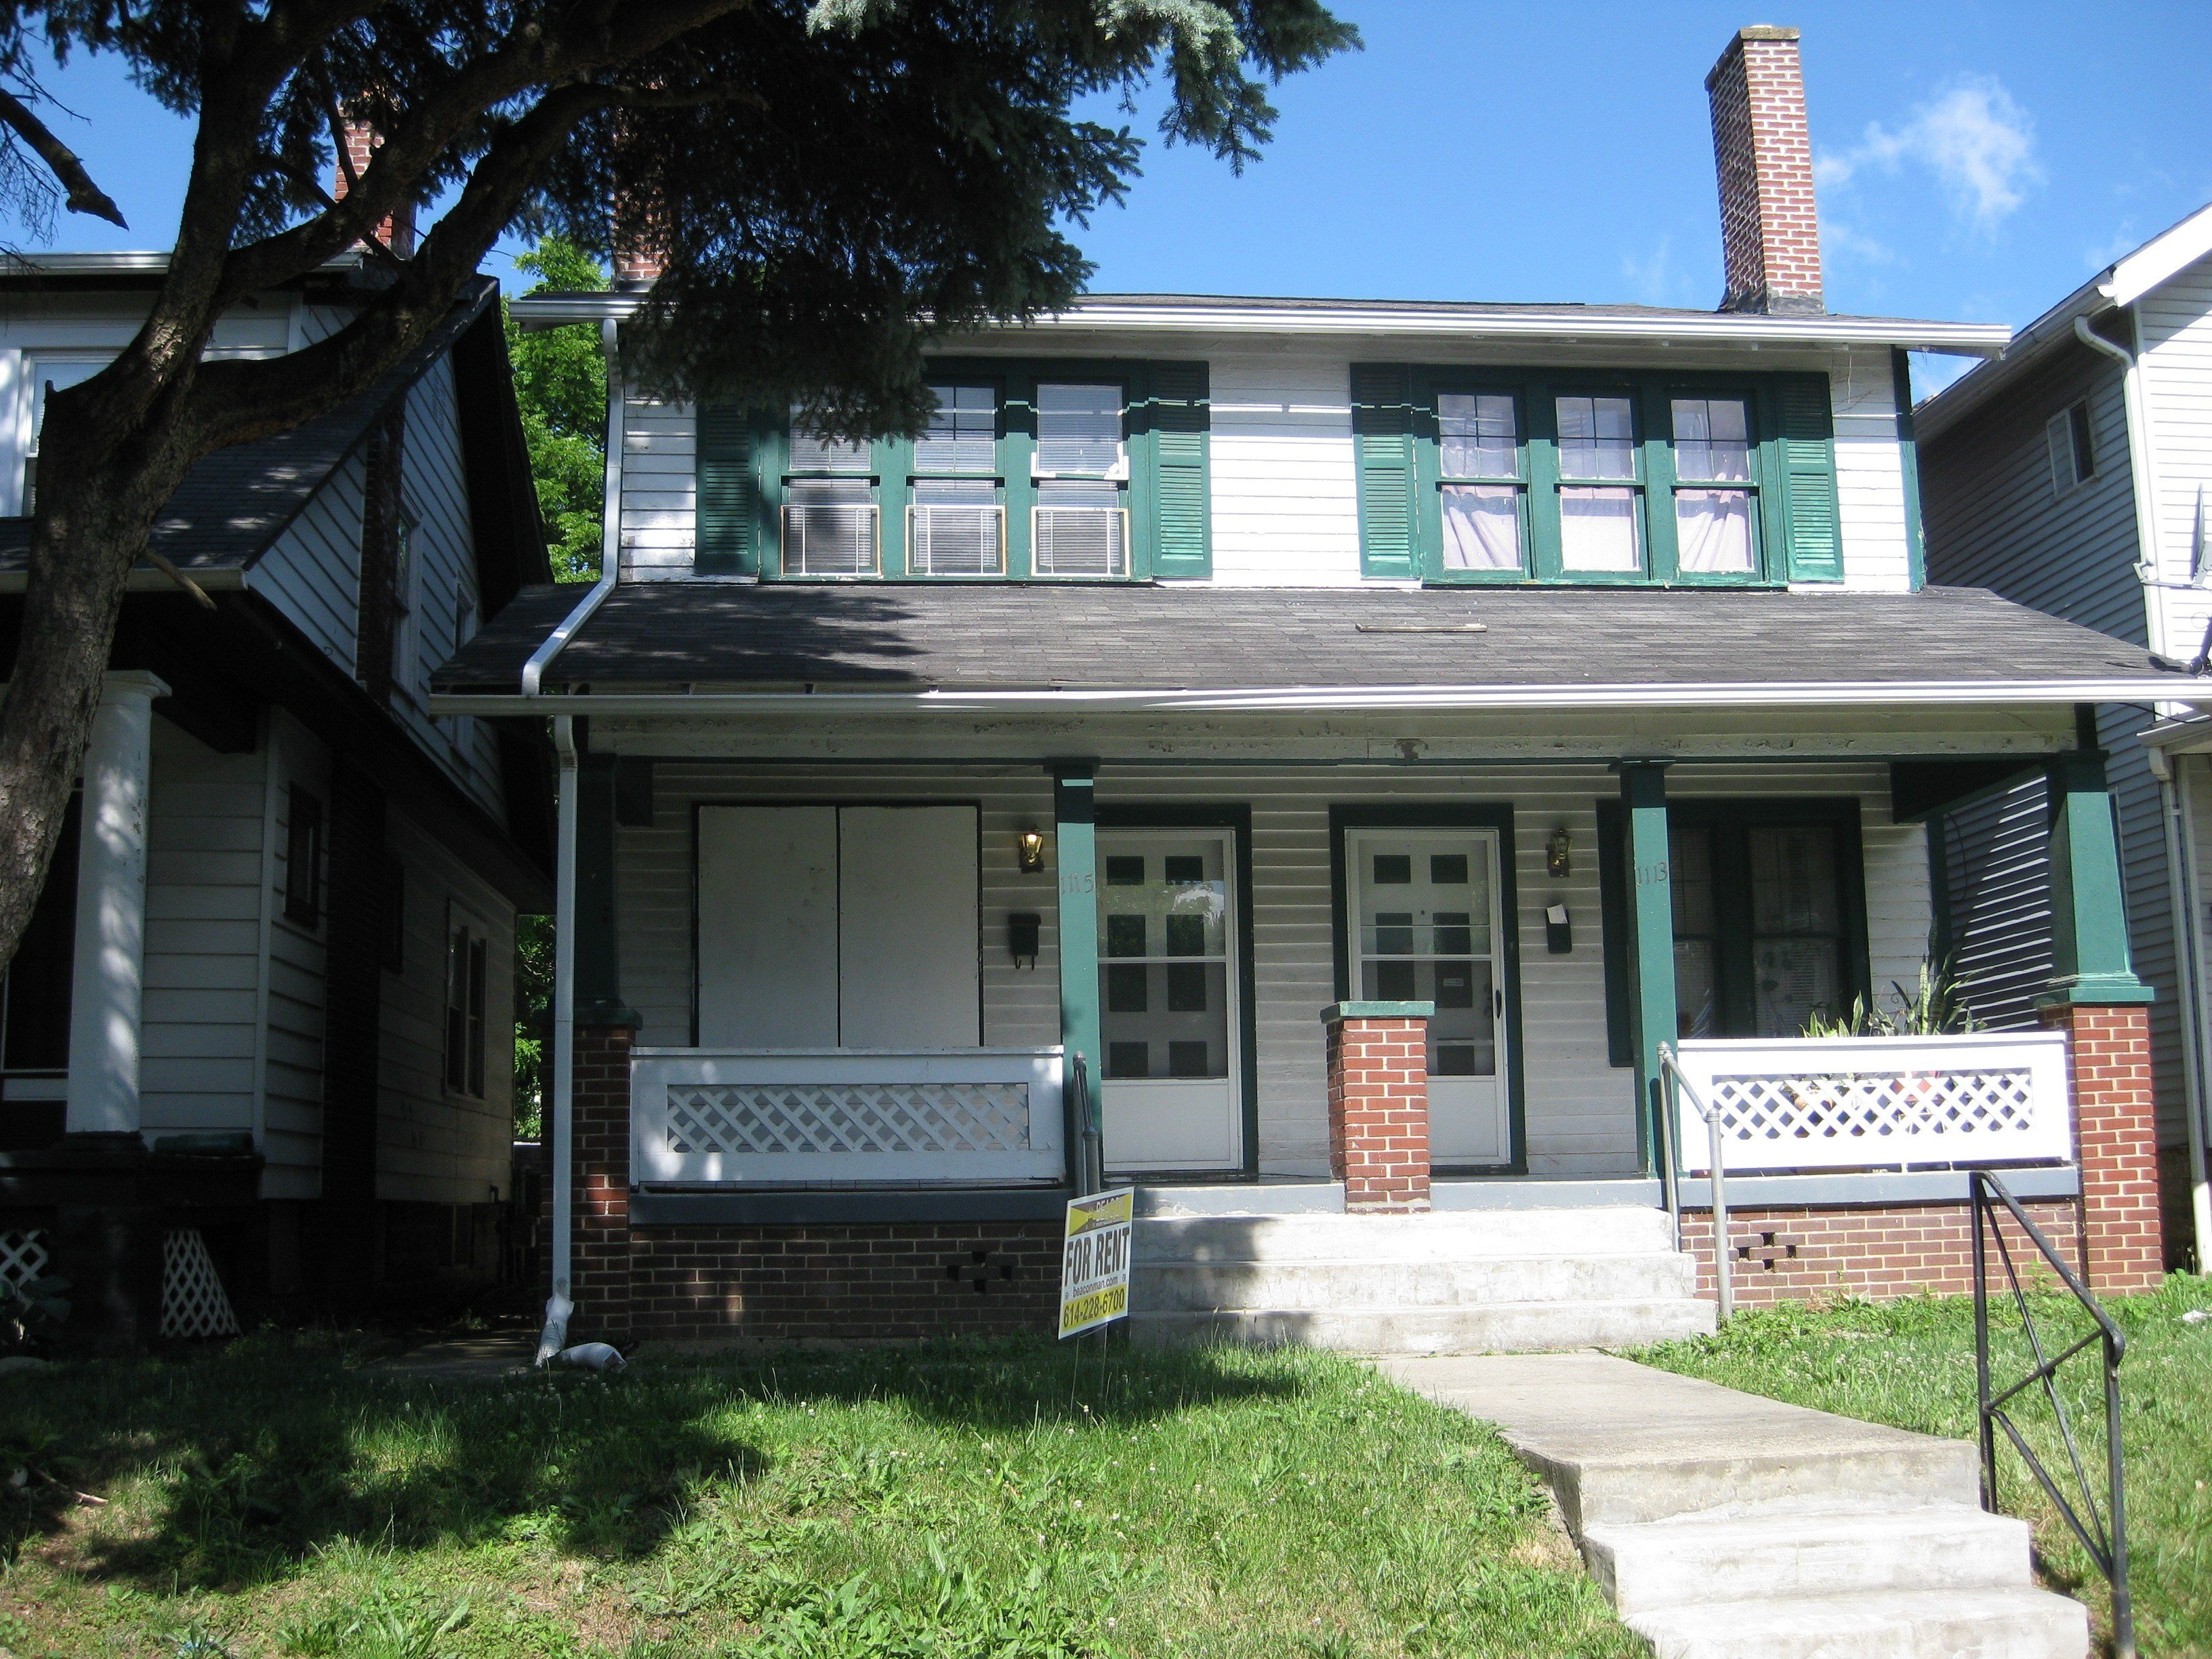 Best 1115 S Ohio Ave Columbus Oh 43206 3 Bedroom Apartment For Rent For 595 Month Zumper With Pictures